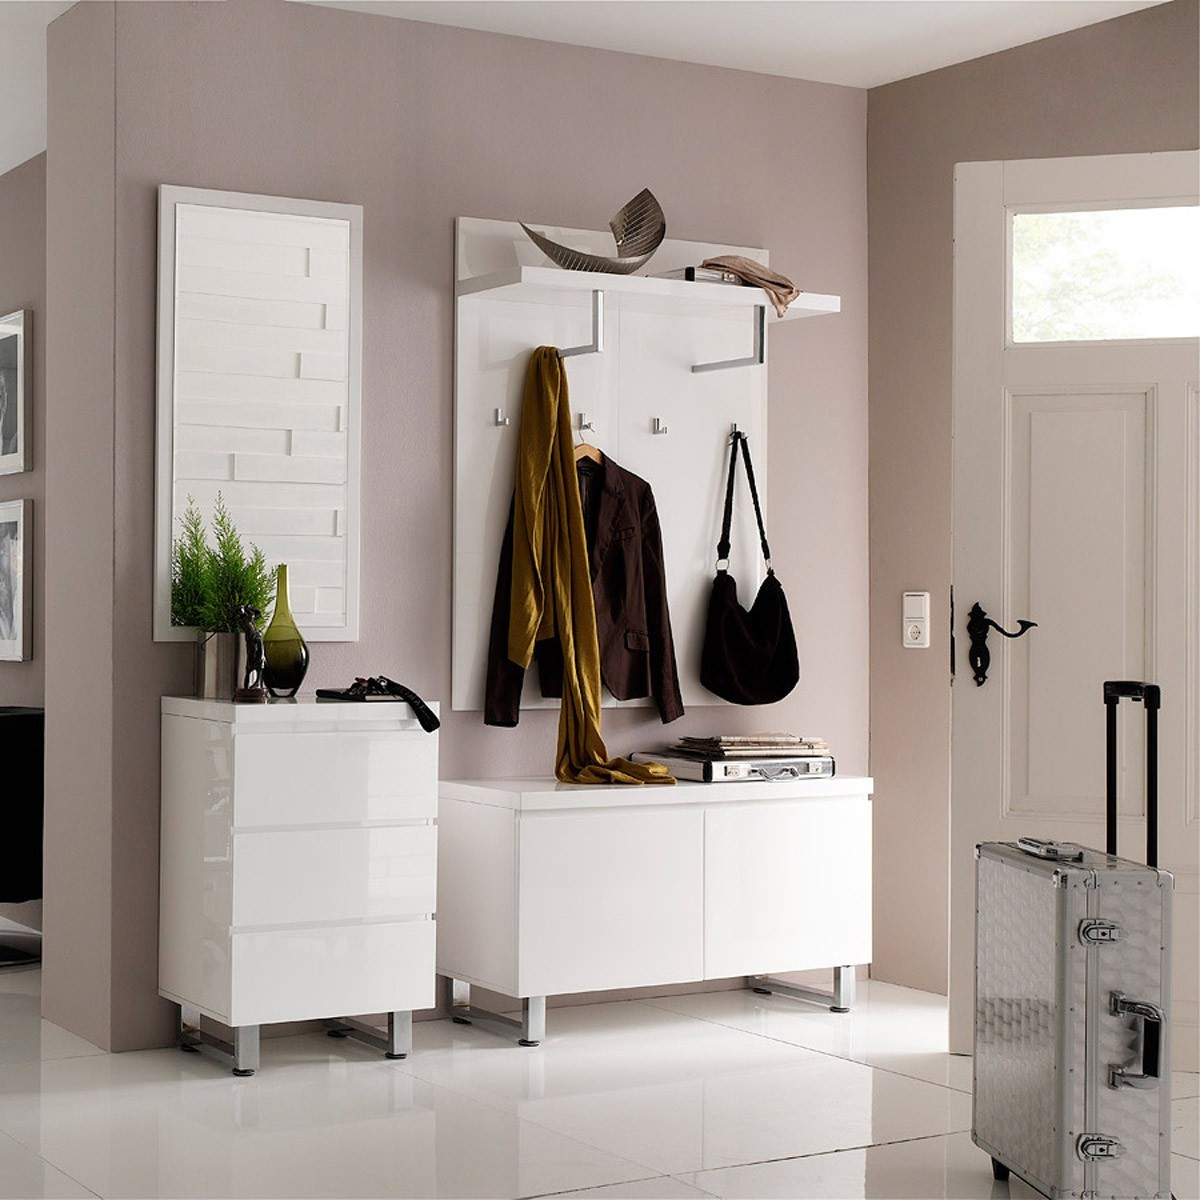 garderobe ideen inneneinrichtung und m bel. Black Bedroom Furniture Sets. Home Design Ideas